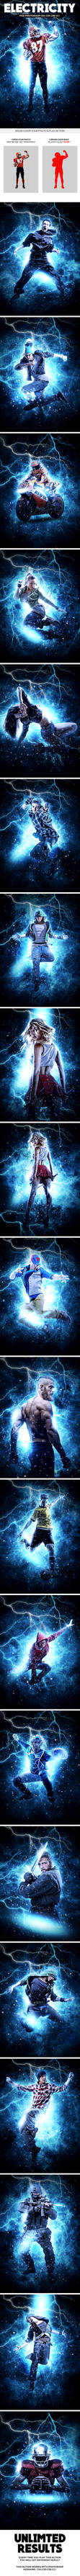 Electricity Photoshop Action by GraphicAssets